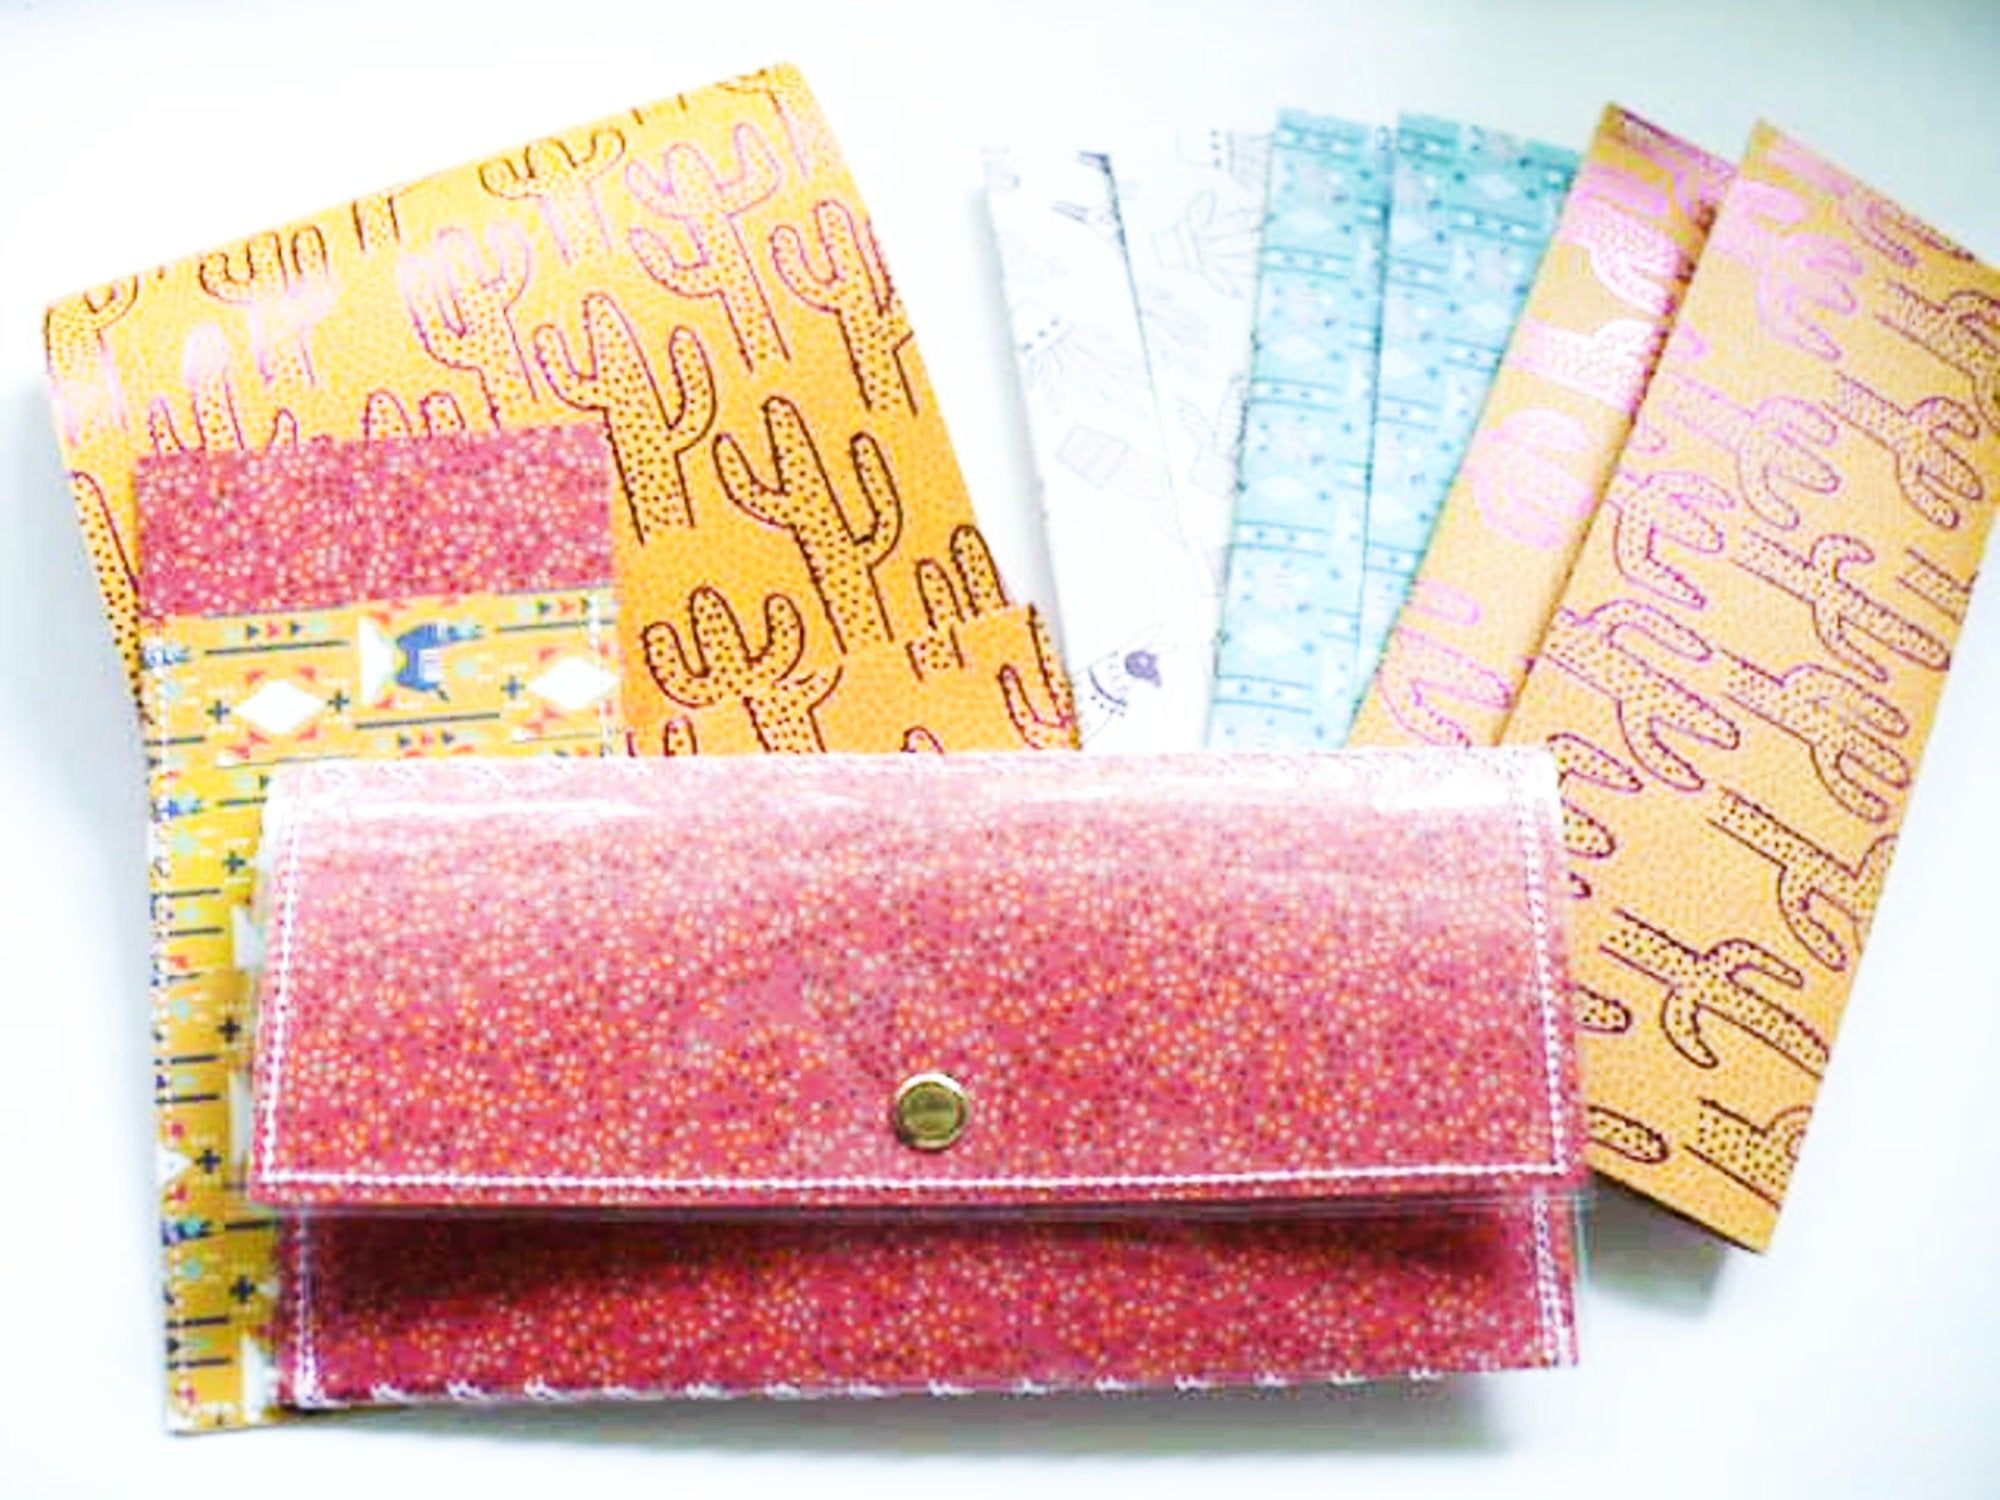 Minimalist Wallet Cash Envelope System Gift For Women with